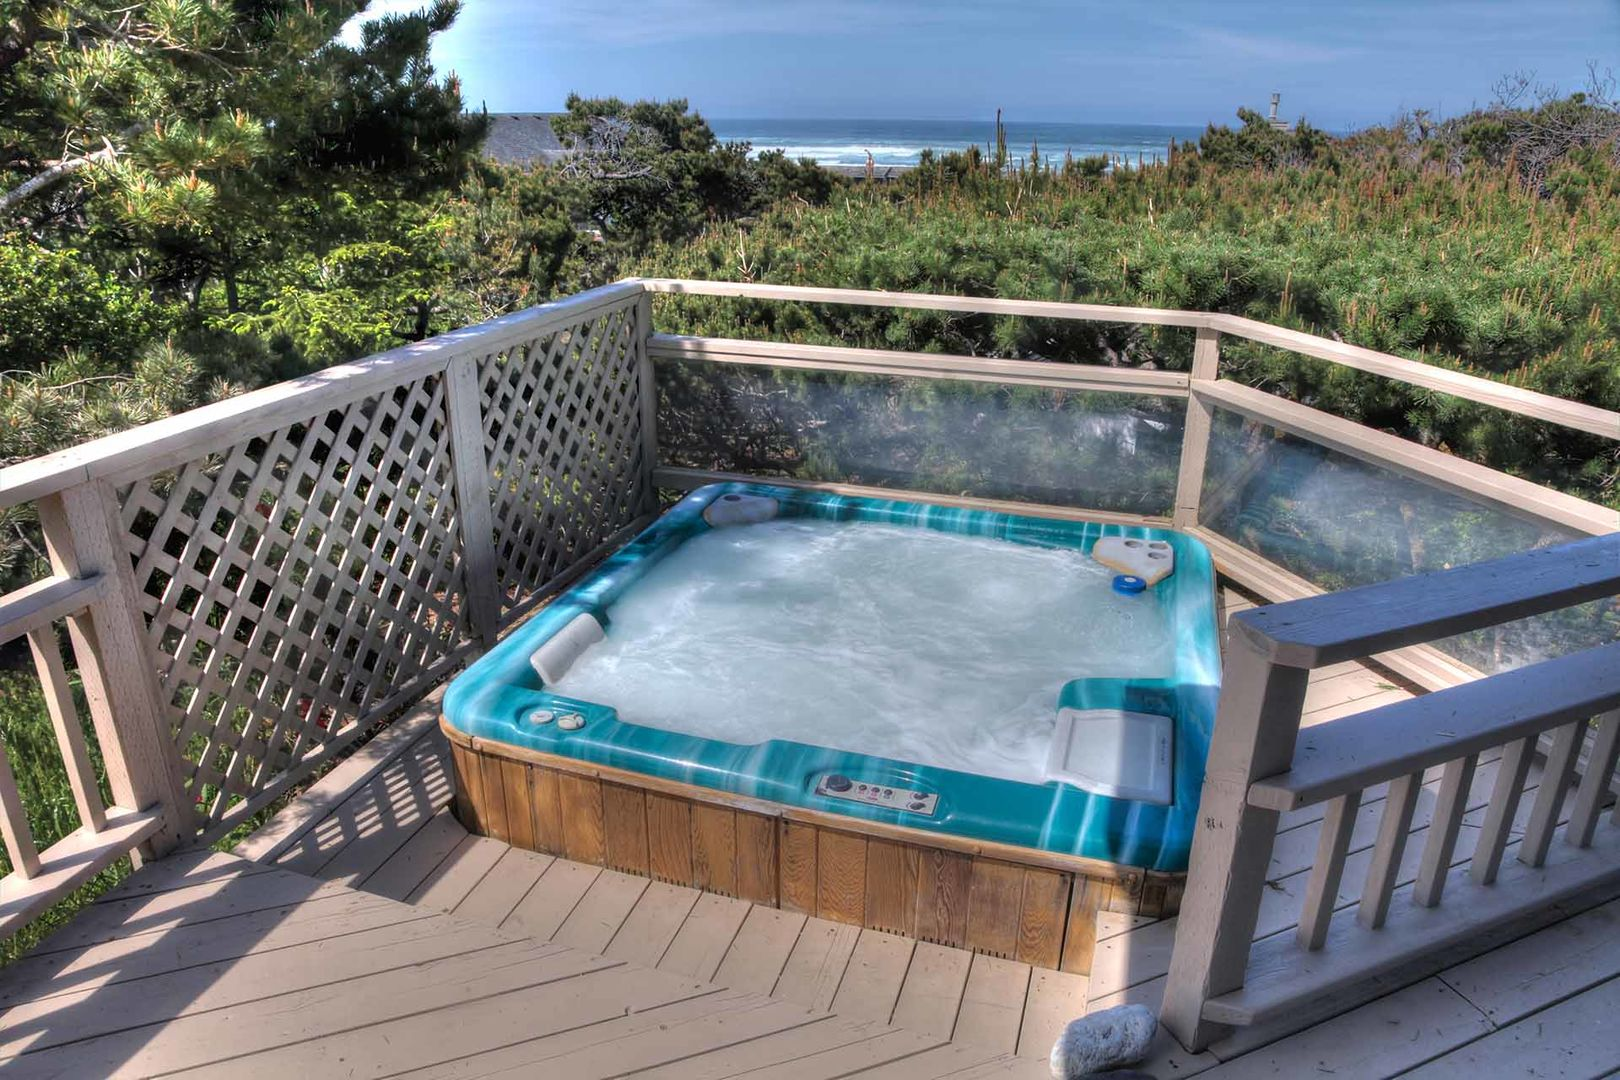 Sunken hot tub, relax to the sounds of the Sea, nestled in the pines.